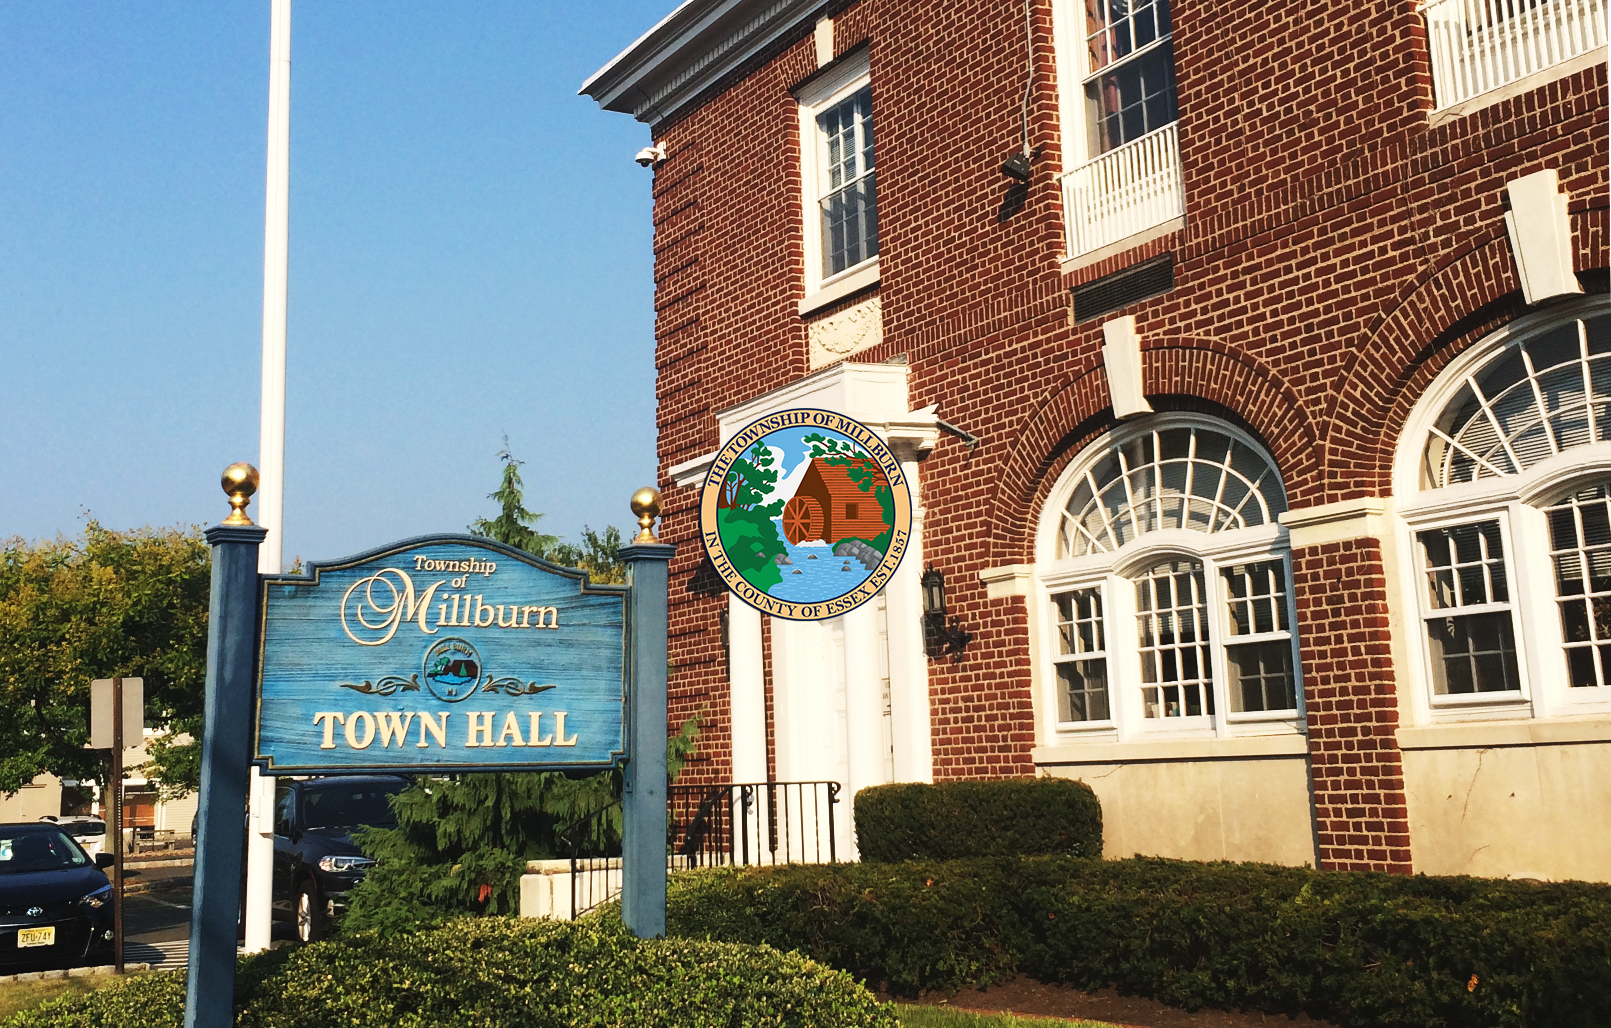 Township of Millburn sign outside of Town Hall building